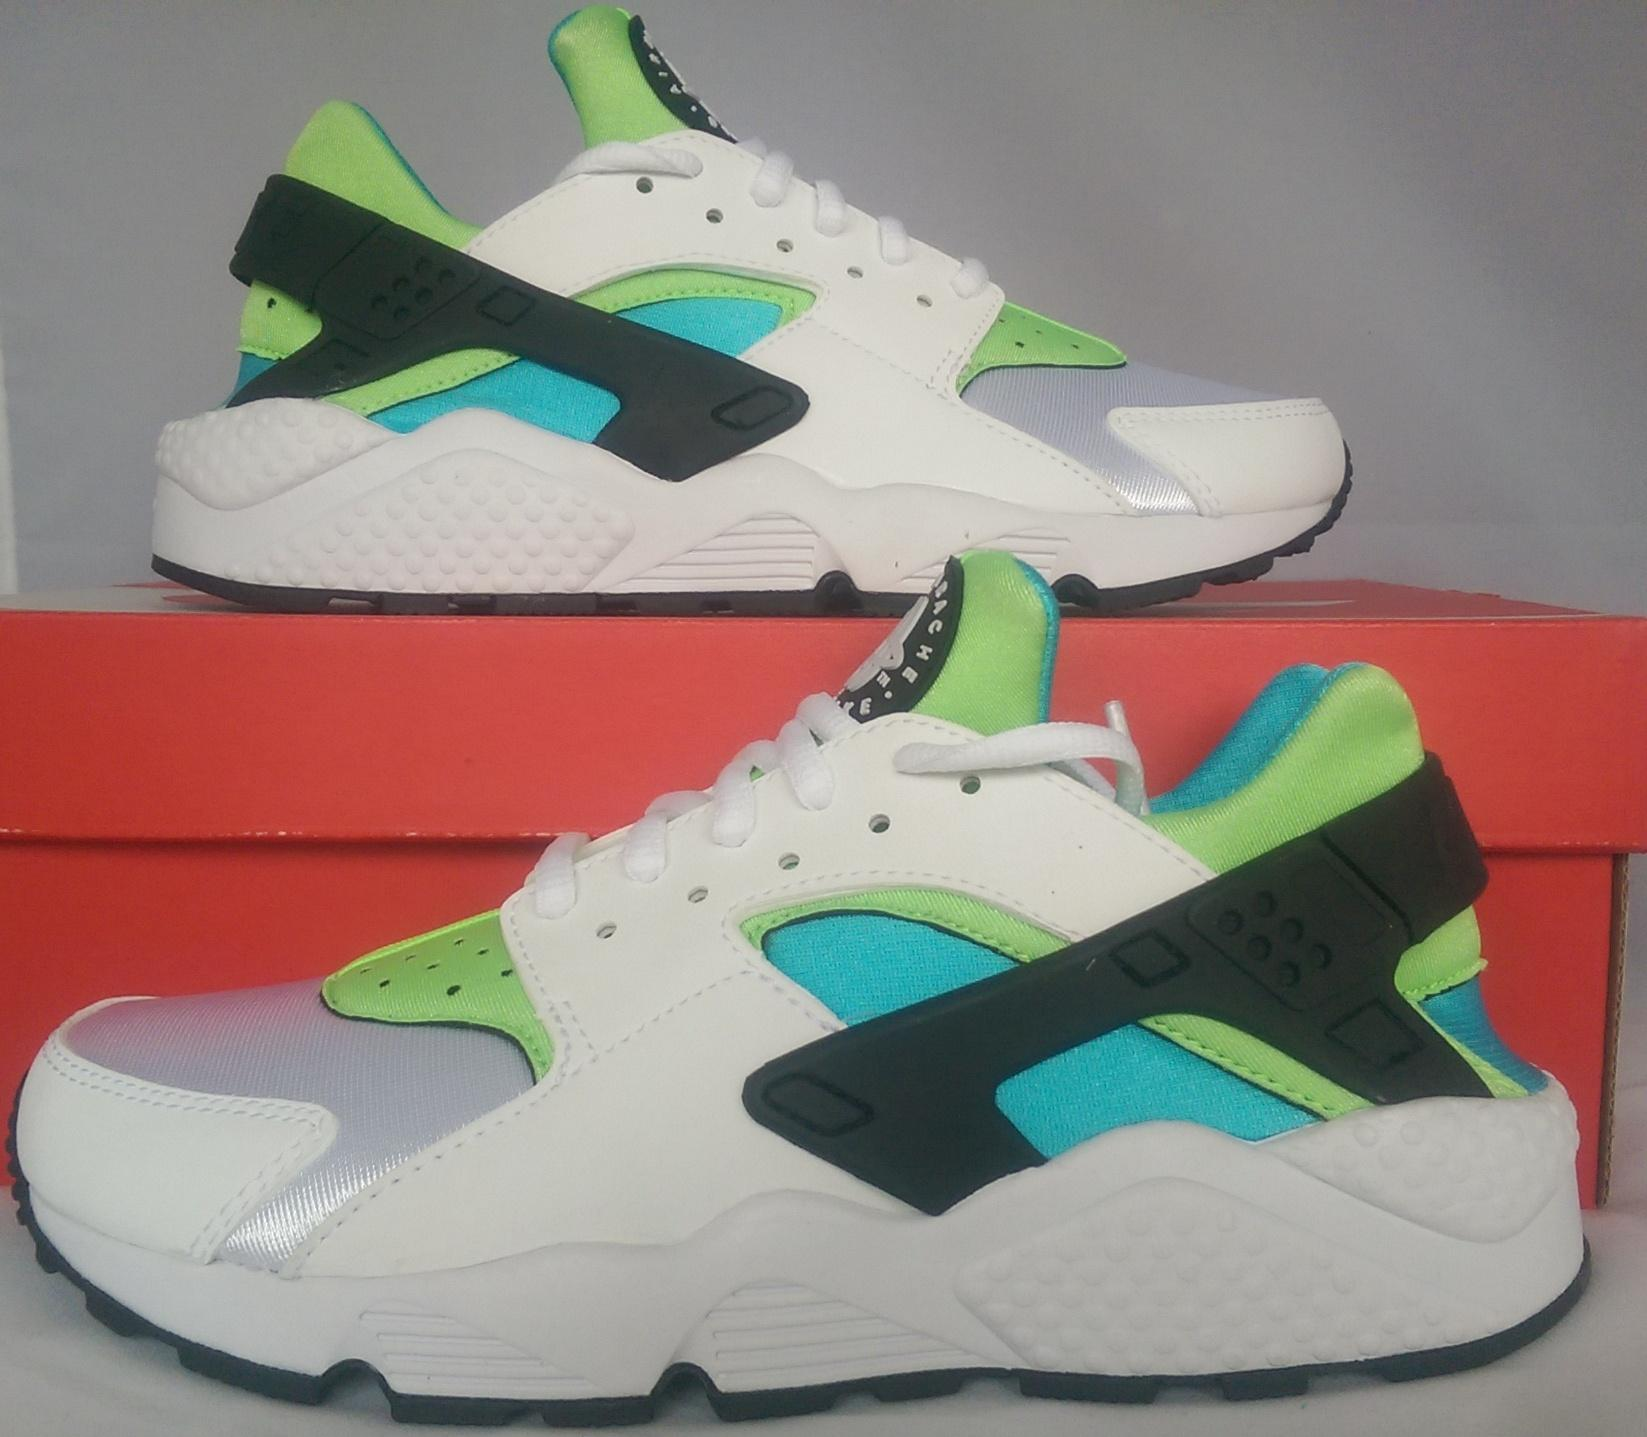 Nike Huarache White Green Blue